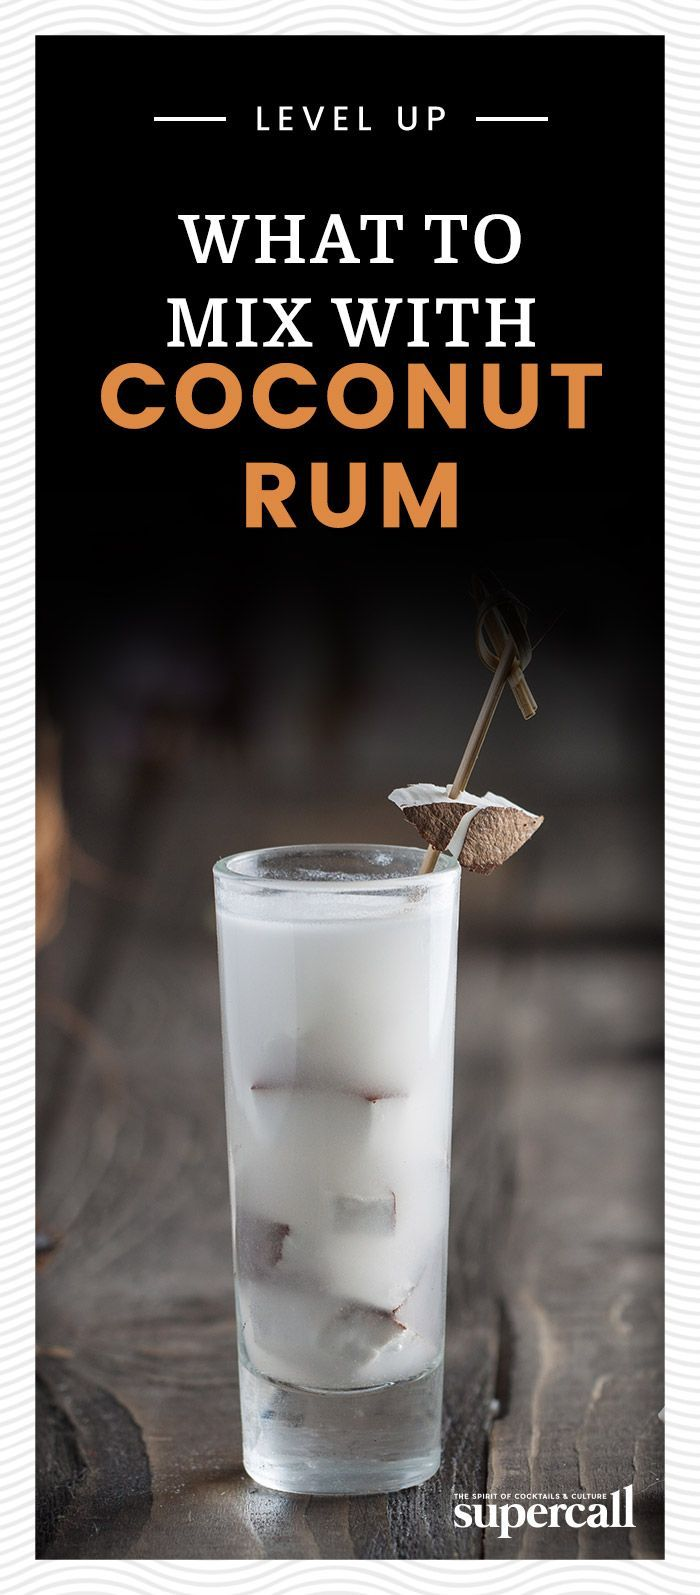 What To Mix With Coconut Rum